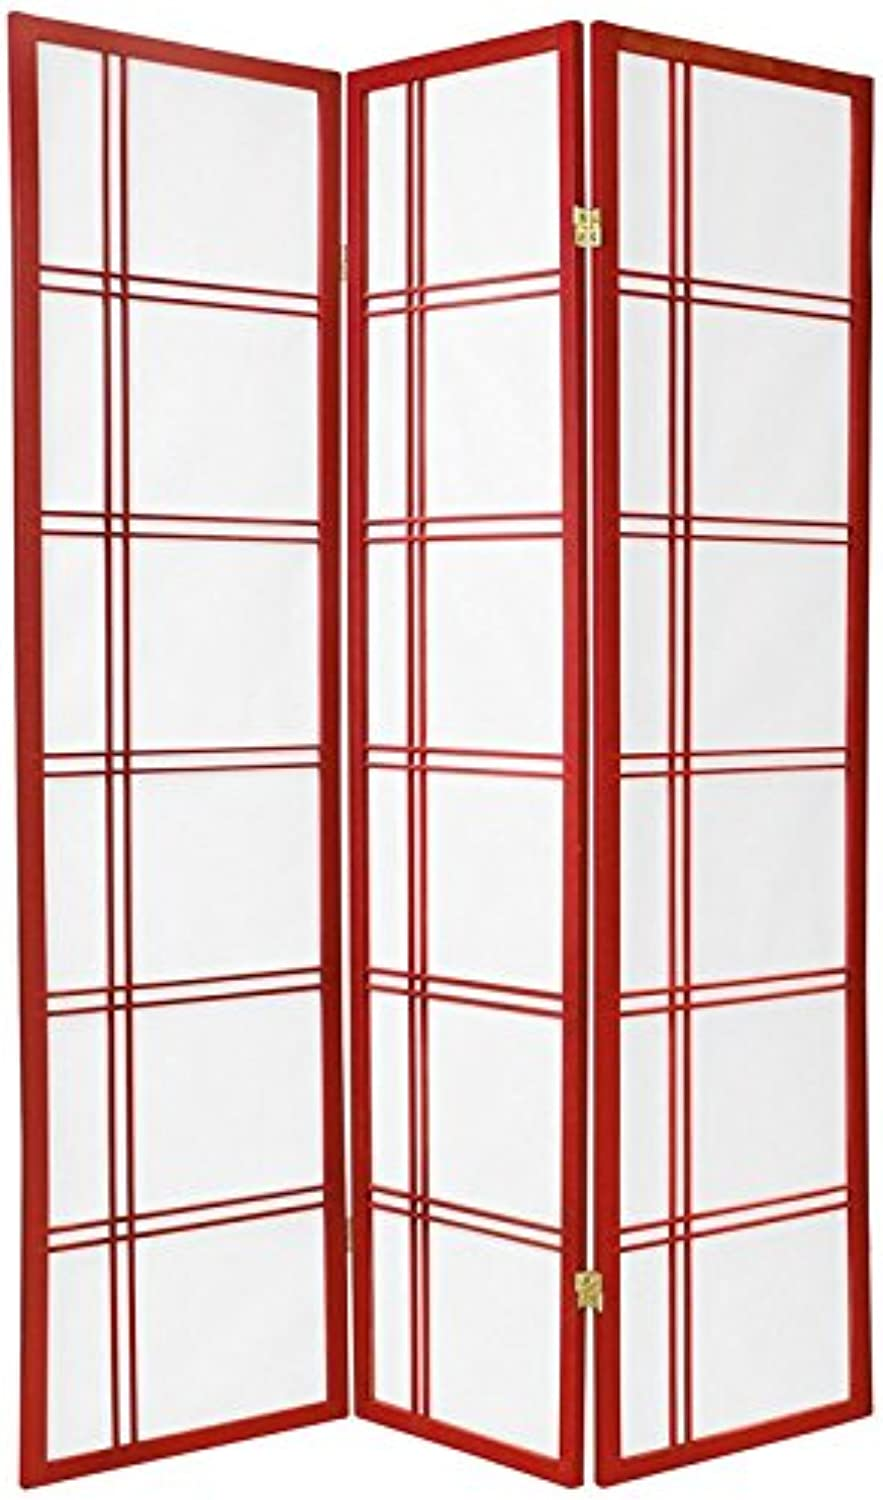 Oriental Furniture 6-Feet Double Cross Japanese Shoji Folding Privacy Screen Room Divider, 3 Panel Red